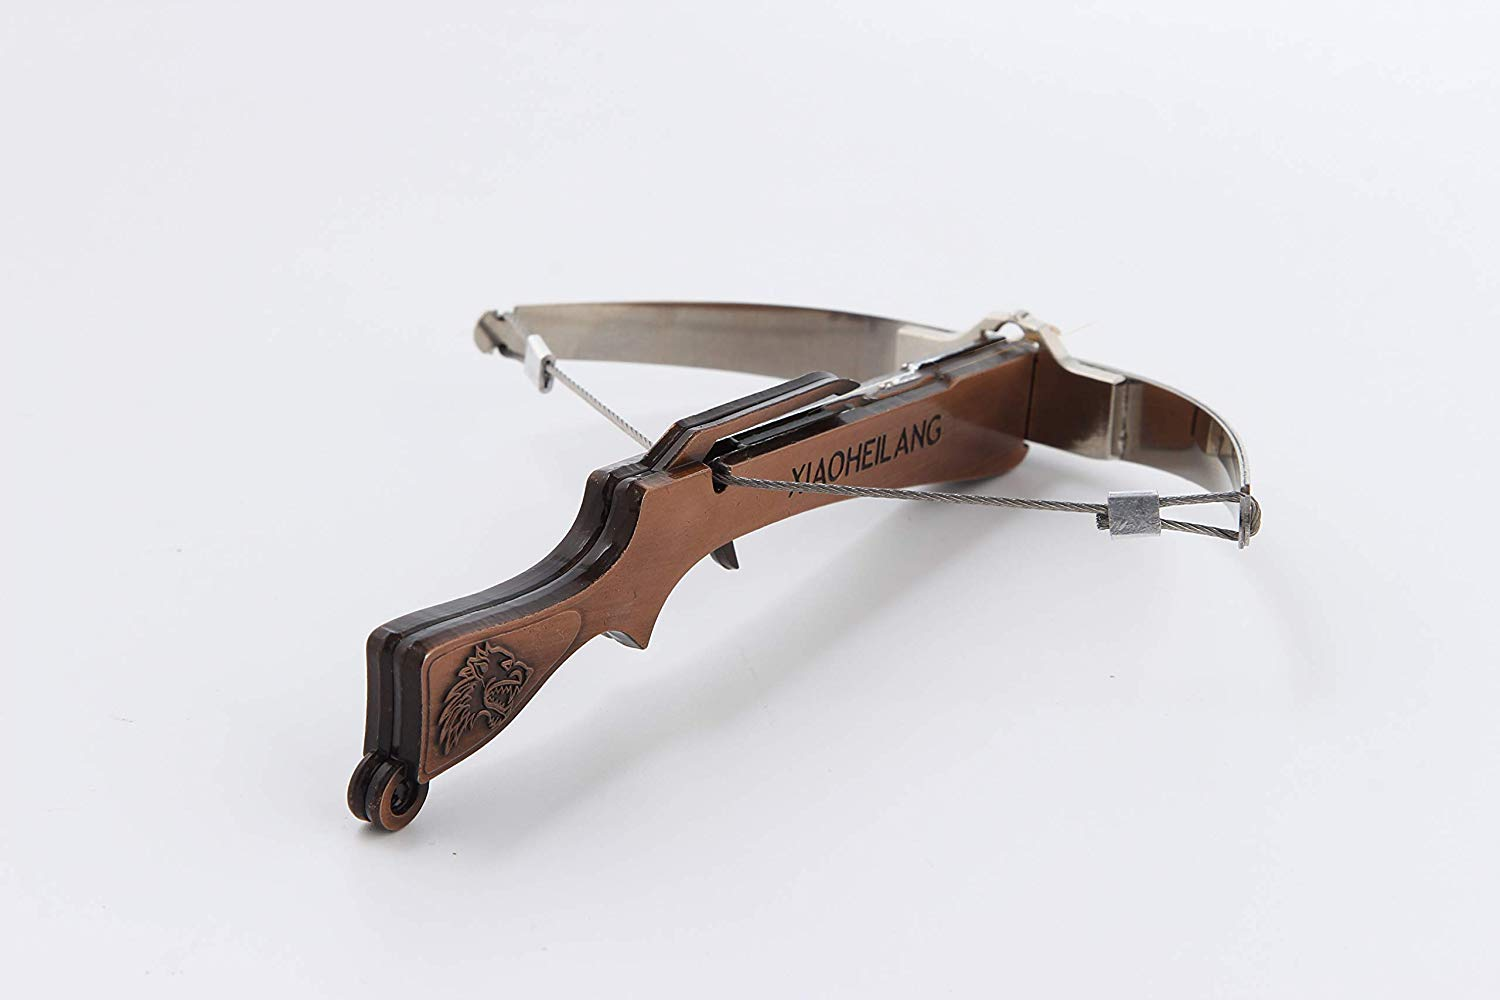 Mini Crossbow Stainless Steel Bow Piece Zinc Alloy Body 6 Pounds Pull